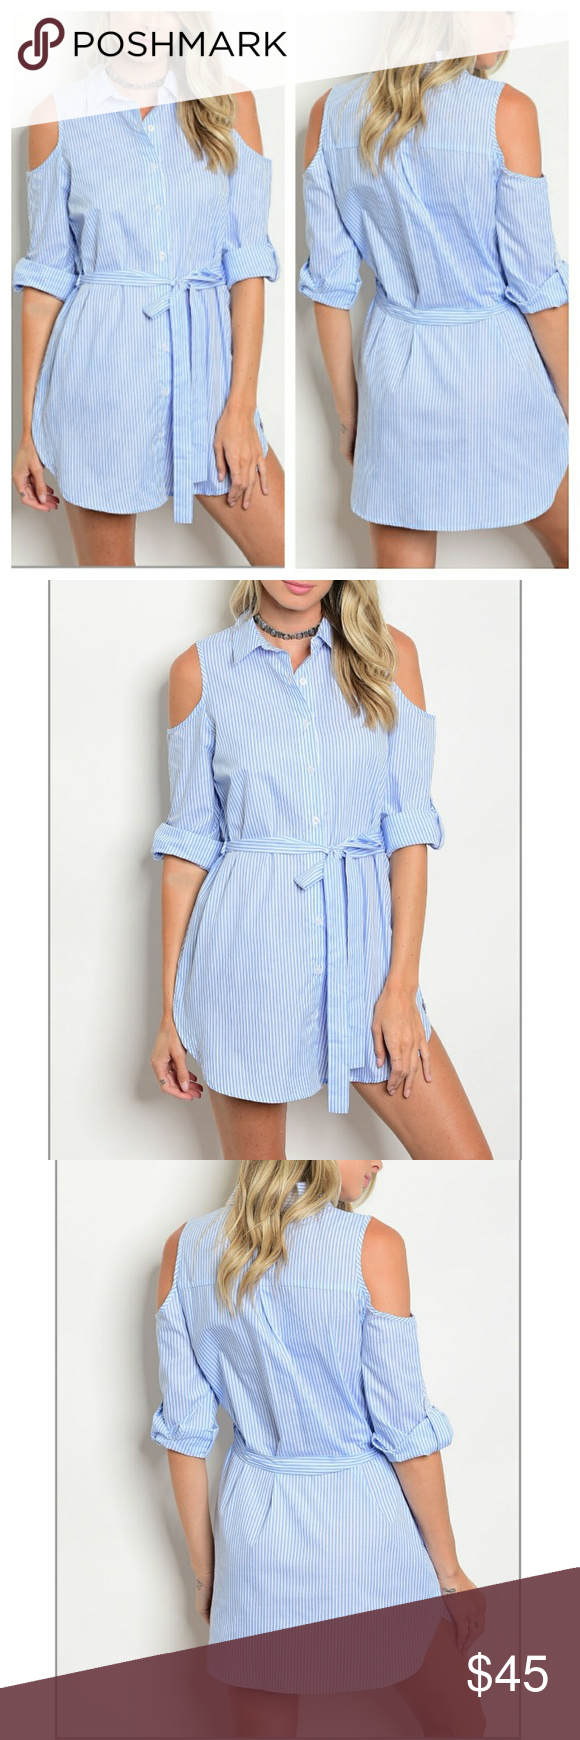 6f329679235 Cold Shoulder Shirt Dress Blue and white striped 3 4 tab sleeve cold  shoulder poplin shirt dress. Cotton blend. True to size. Please refer to  generic chart ...